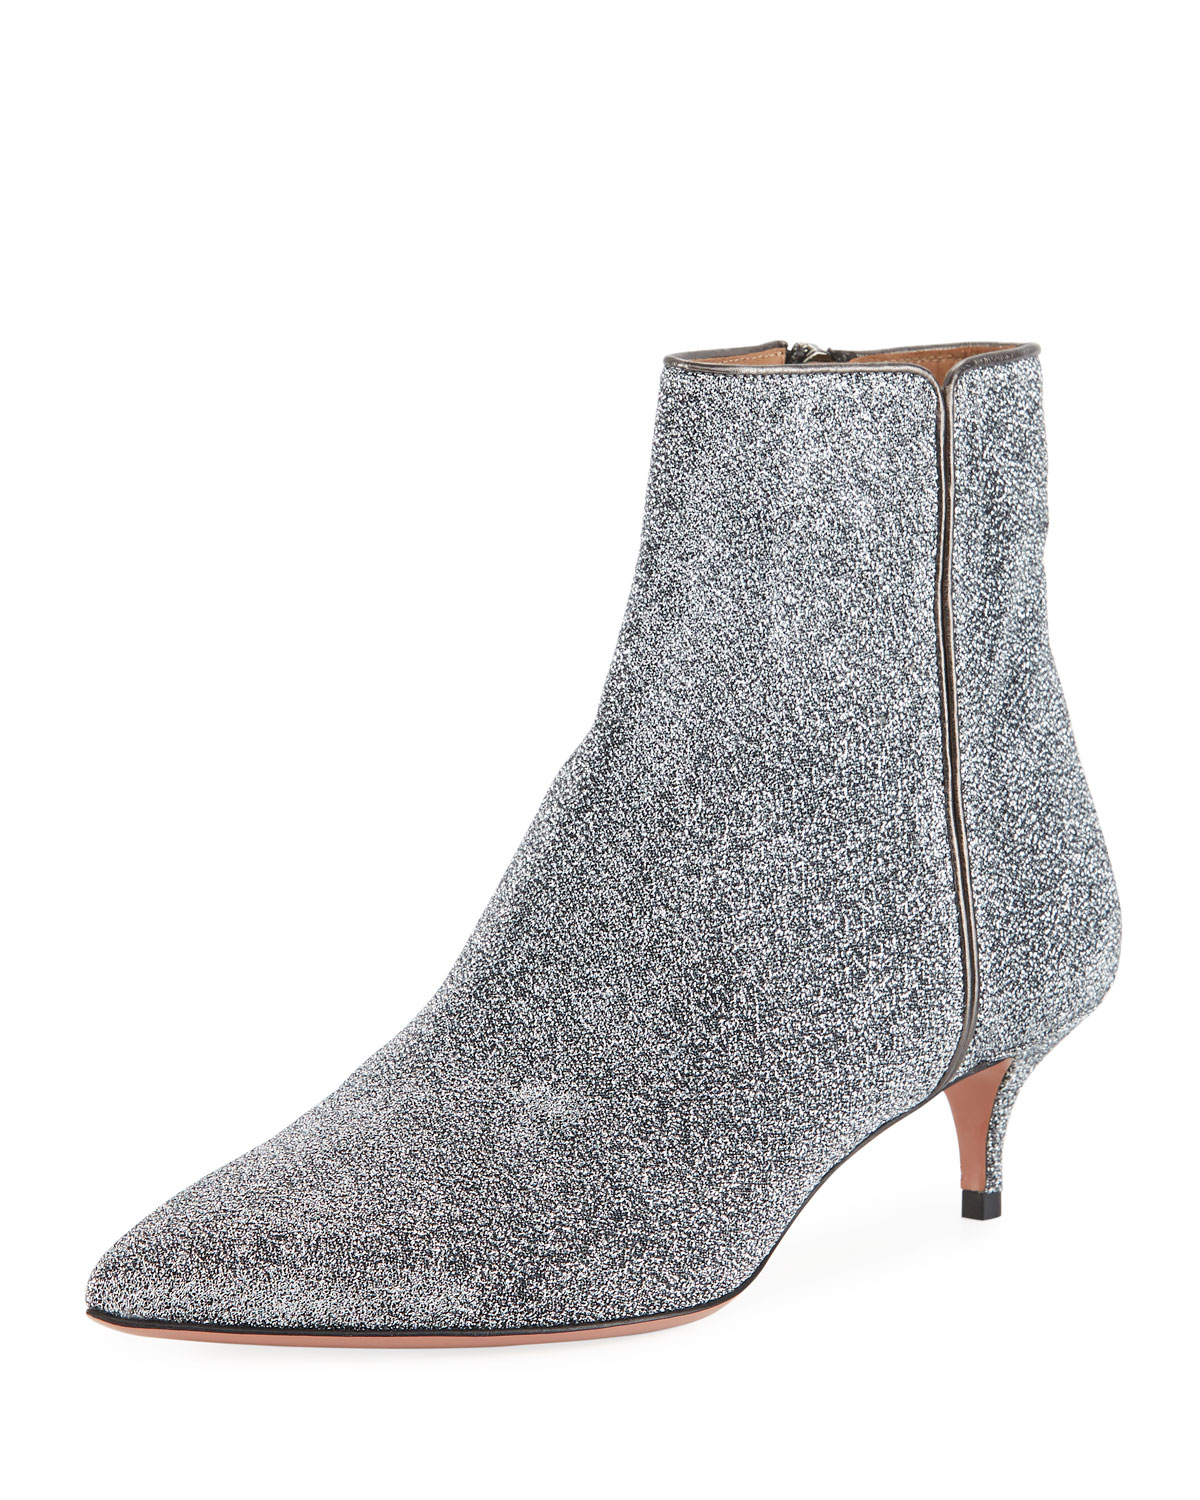 Quant Metallic Stretch-Knit Ankle BootsAquazzura aGyUyp